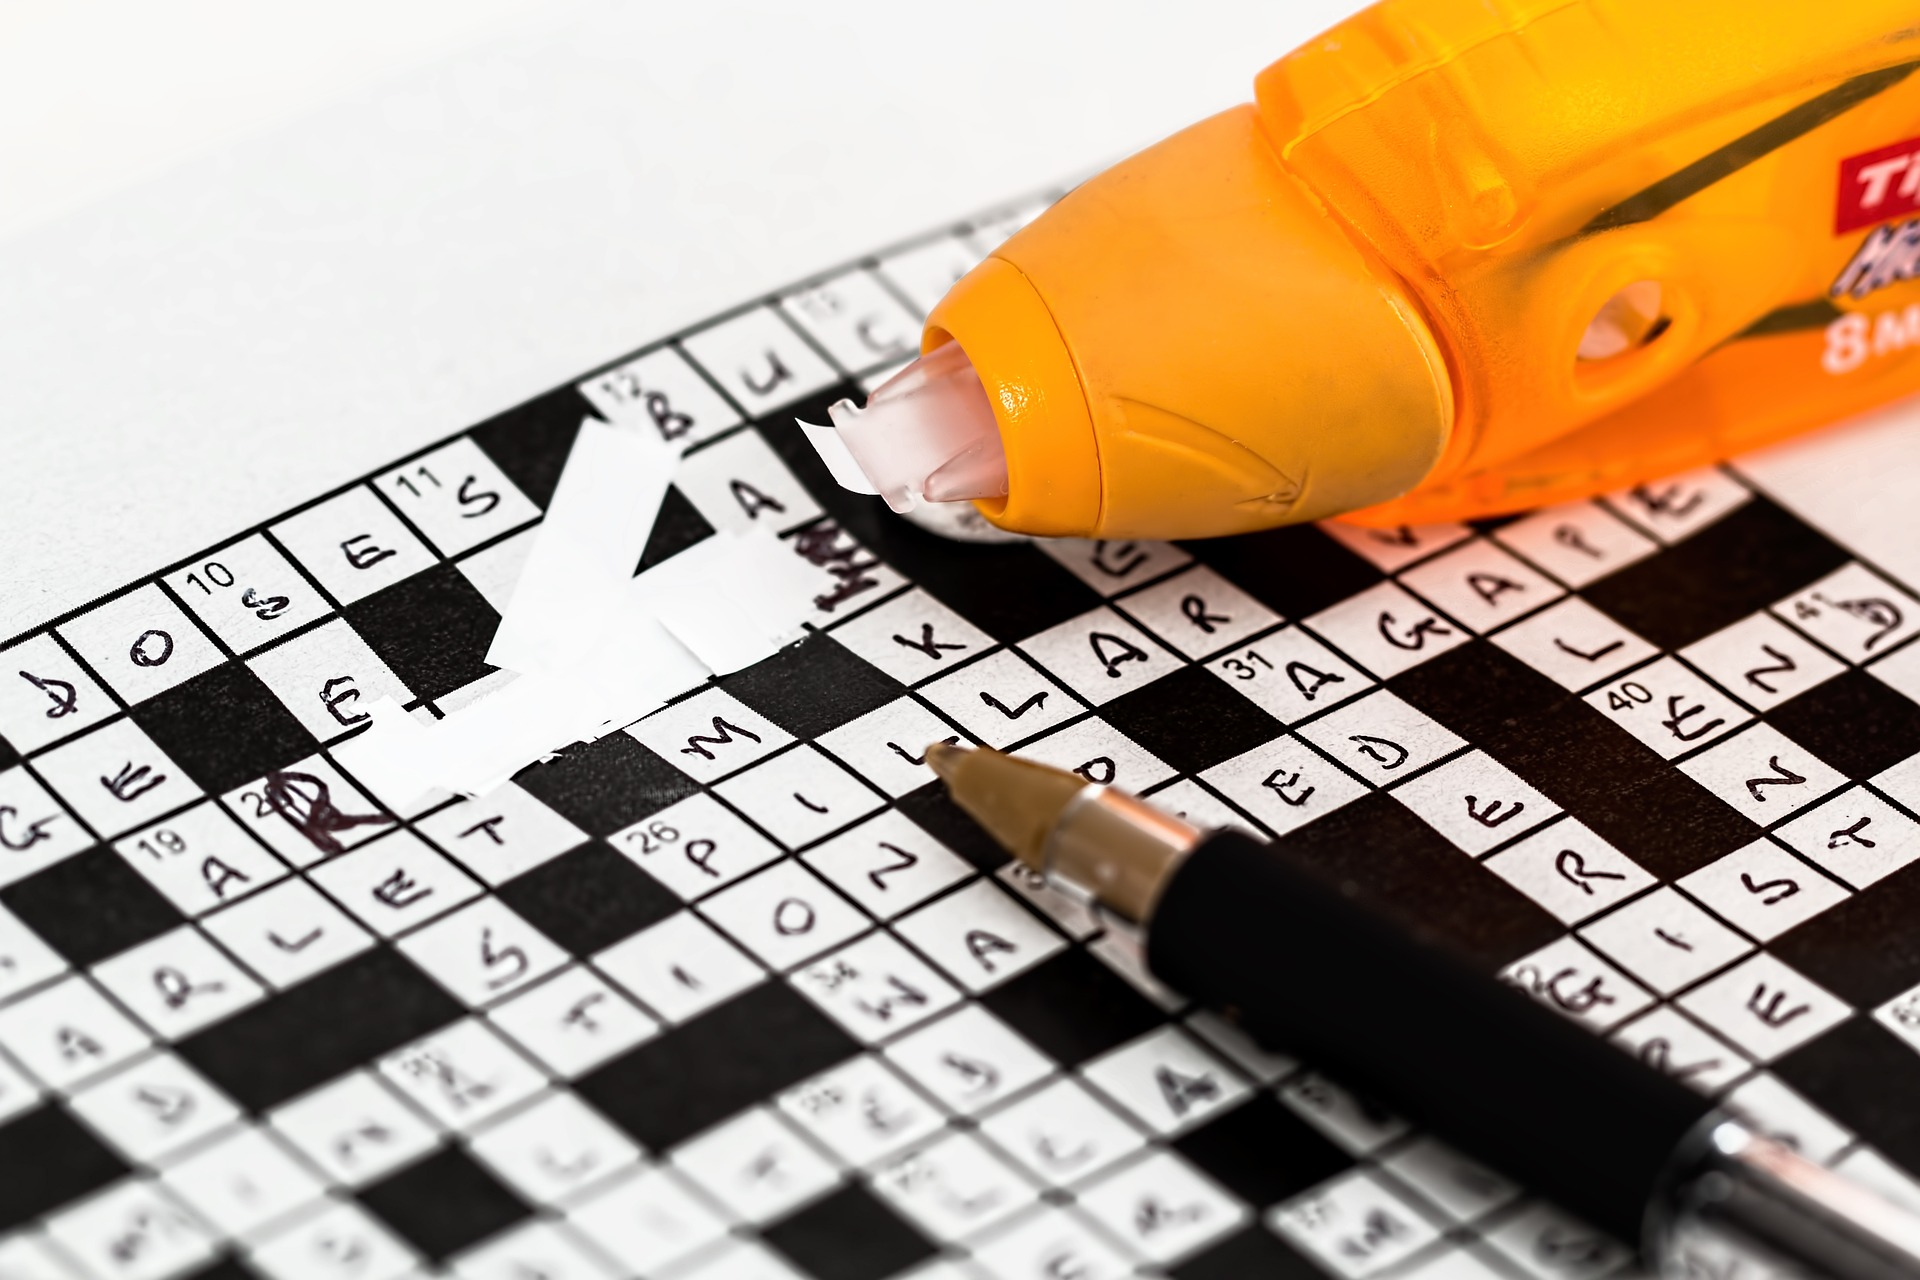 tipexed crossword